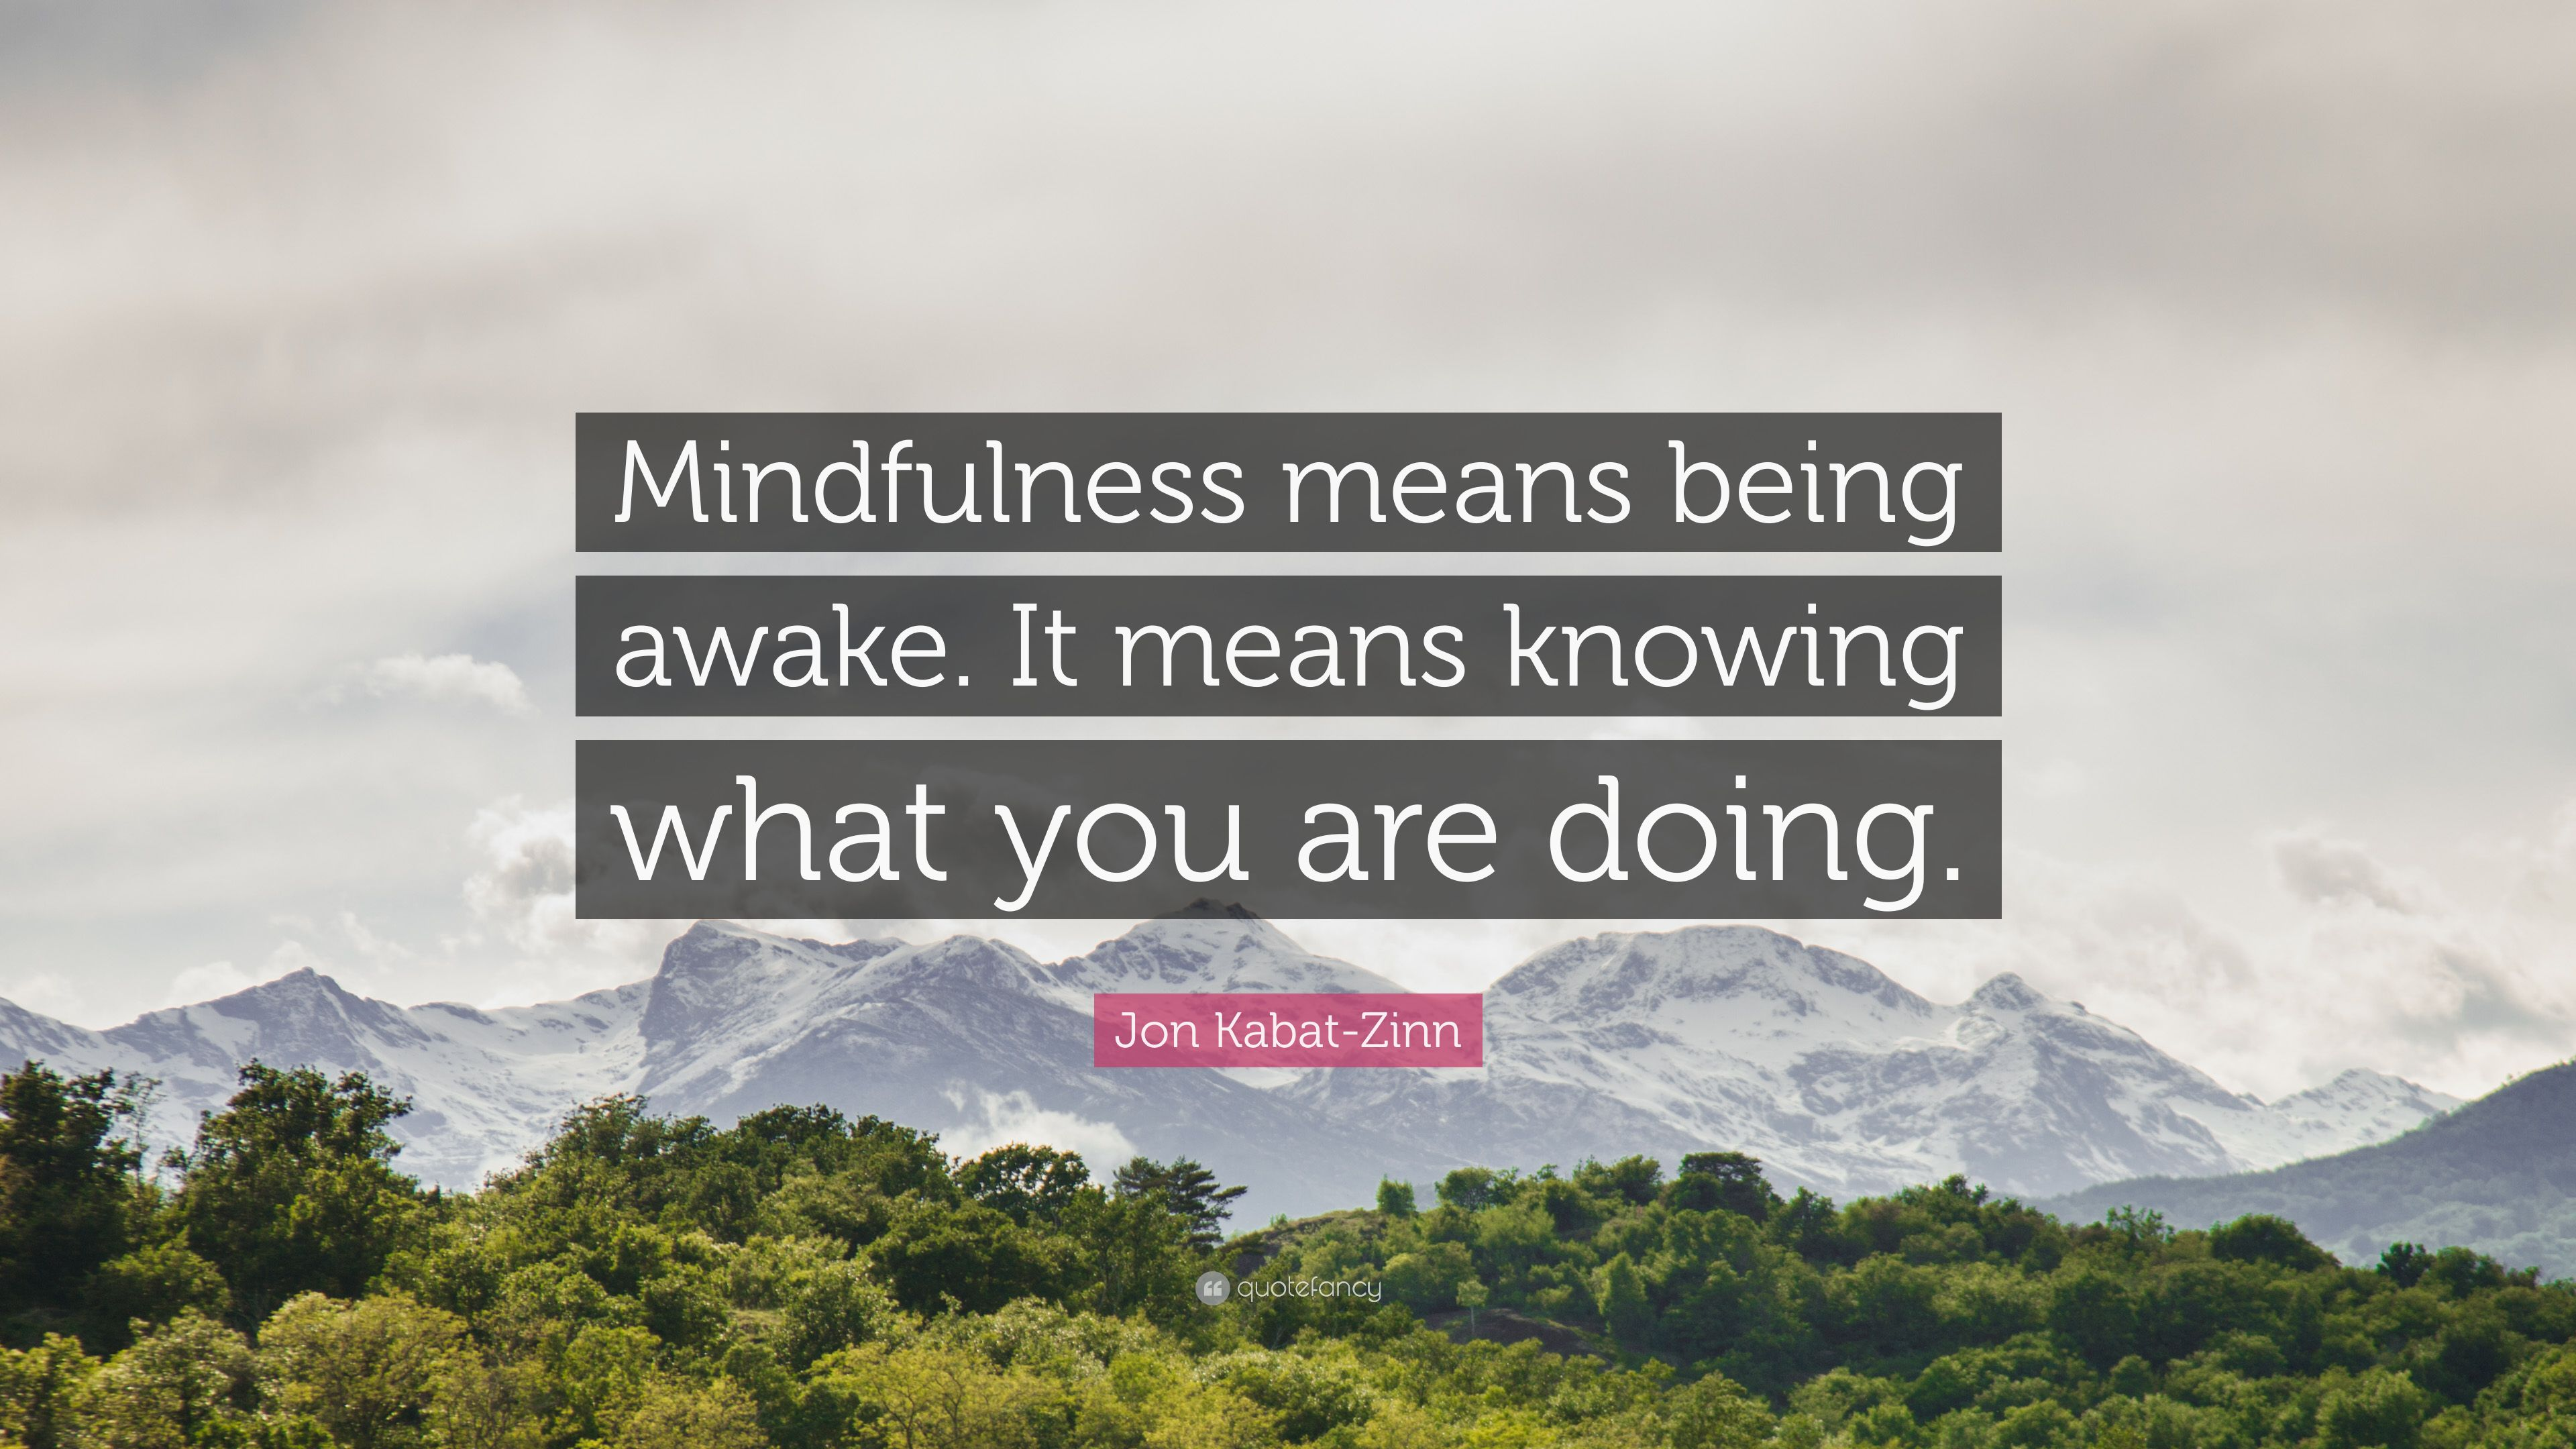 quotation about minfulness